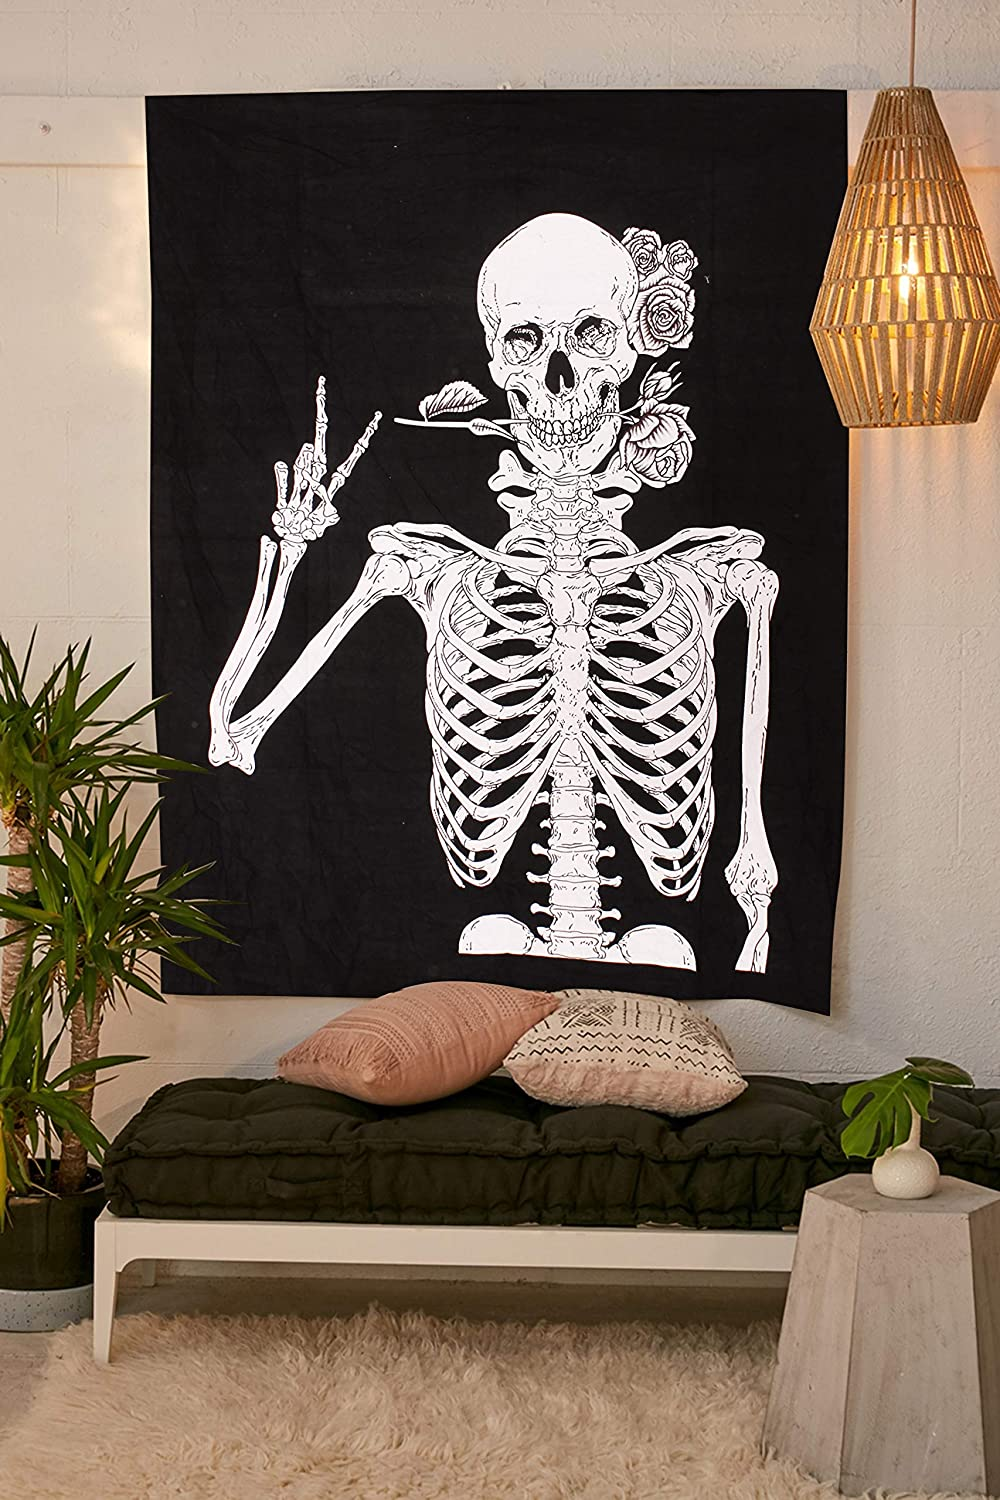 Skull Tapestry Wall Hanging Human Skeleton Bohemian Cotton Printed Wall Hanging Tapestries, Room Art Decoration, Black and White